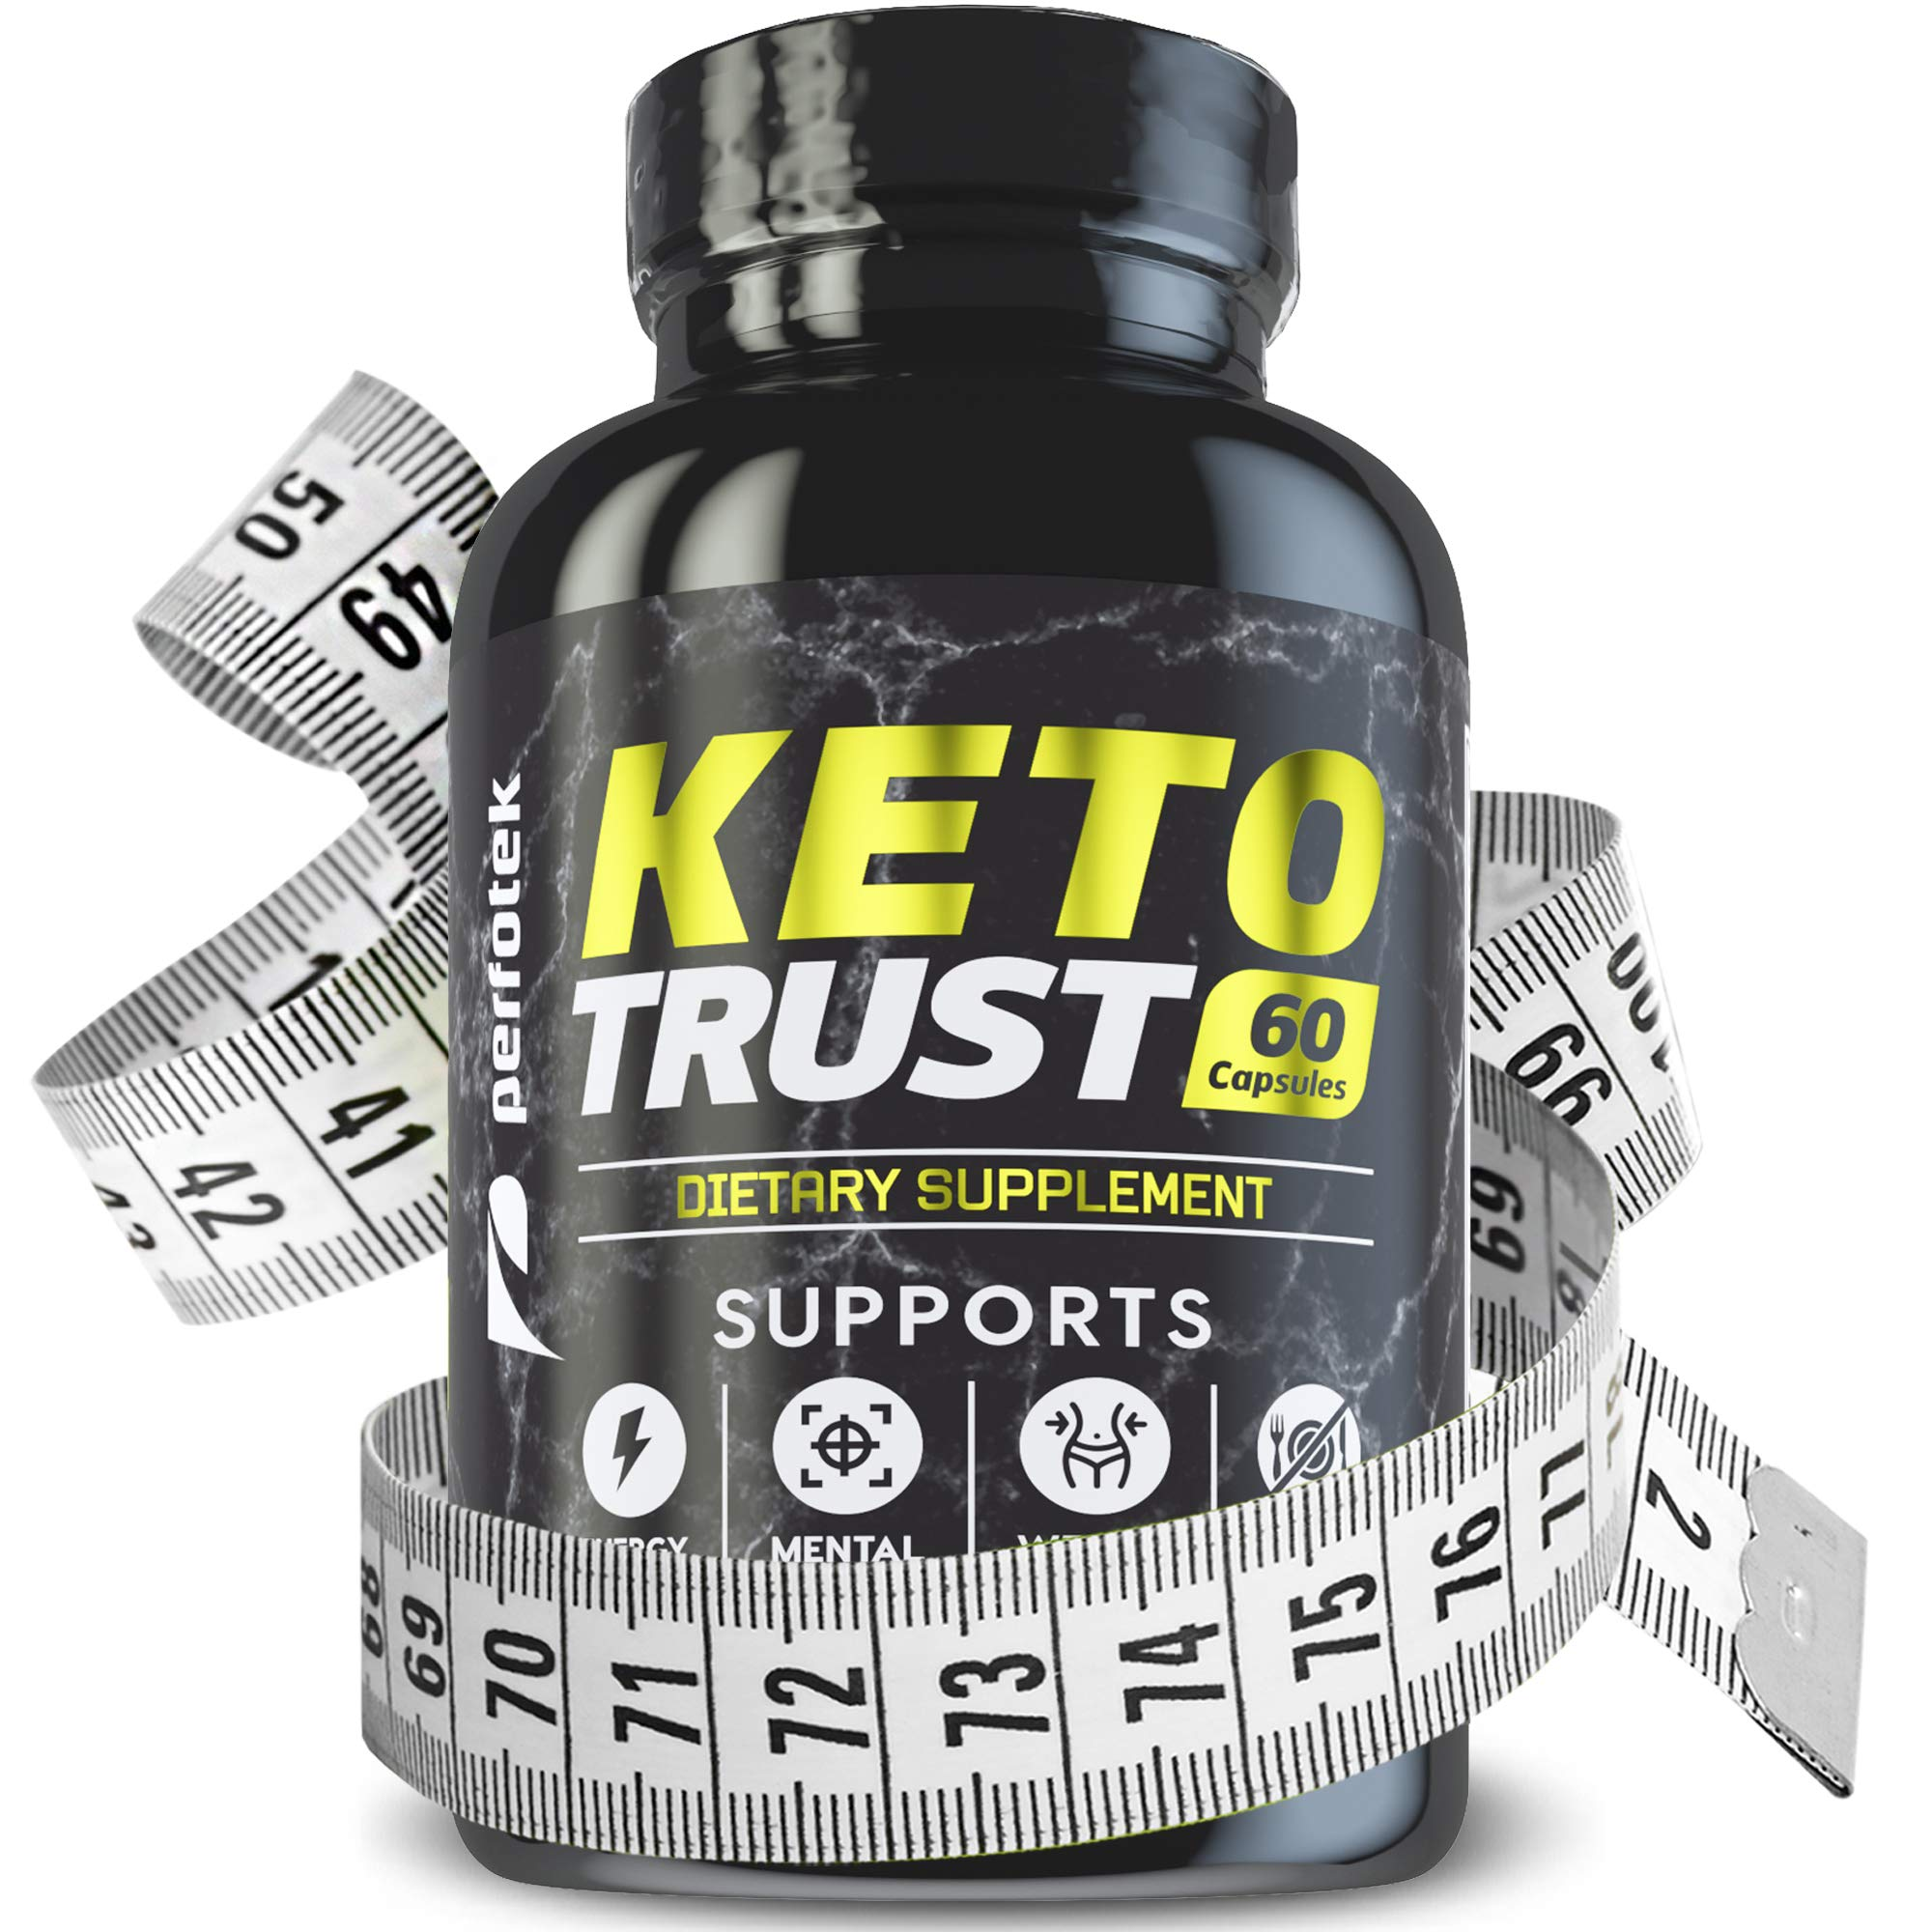 Keto Diet Pills Weight Loss Supplement Fat Burner Advanced Extract Formula - Garcinia Cambogia - Raspberry Ketones, Green Coffee Bean, Green Tea All Natural, Ketogenic Diet for Women and Men, 1600 mg